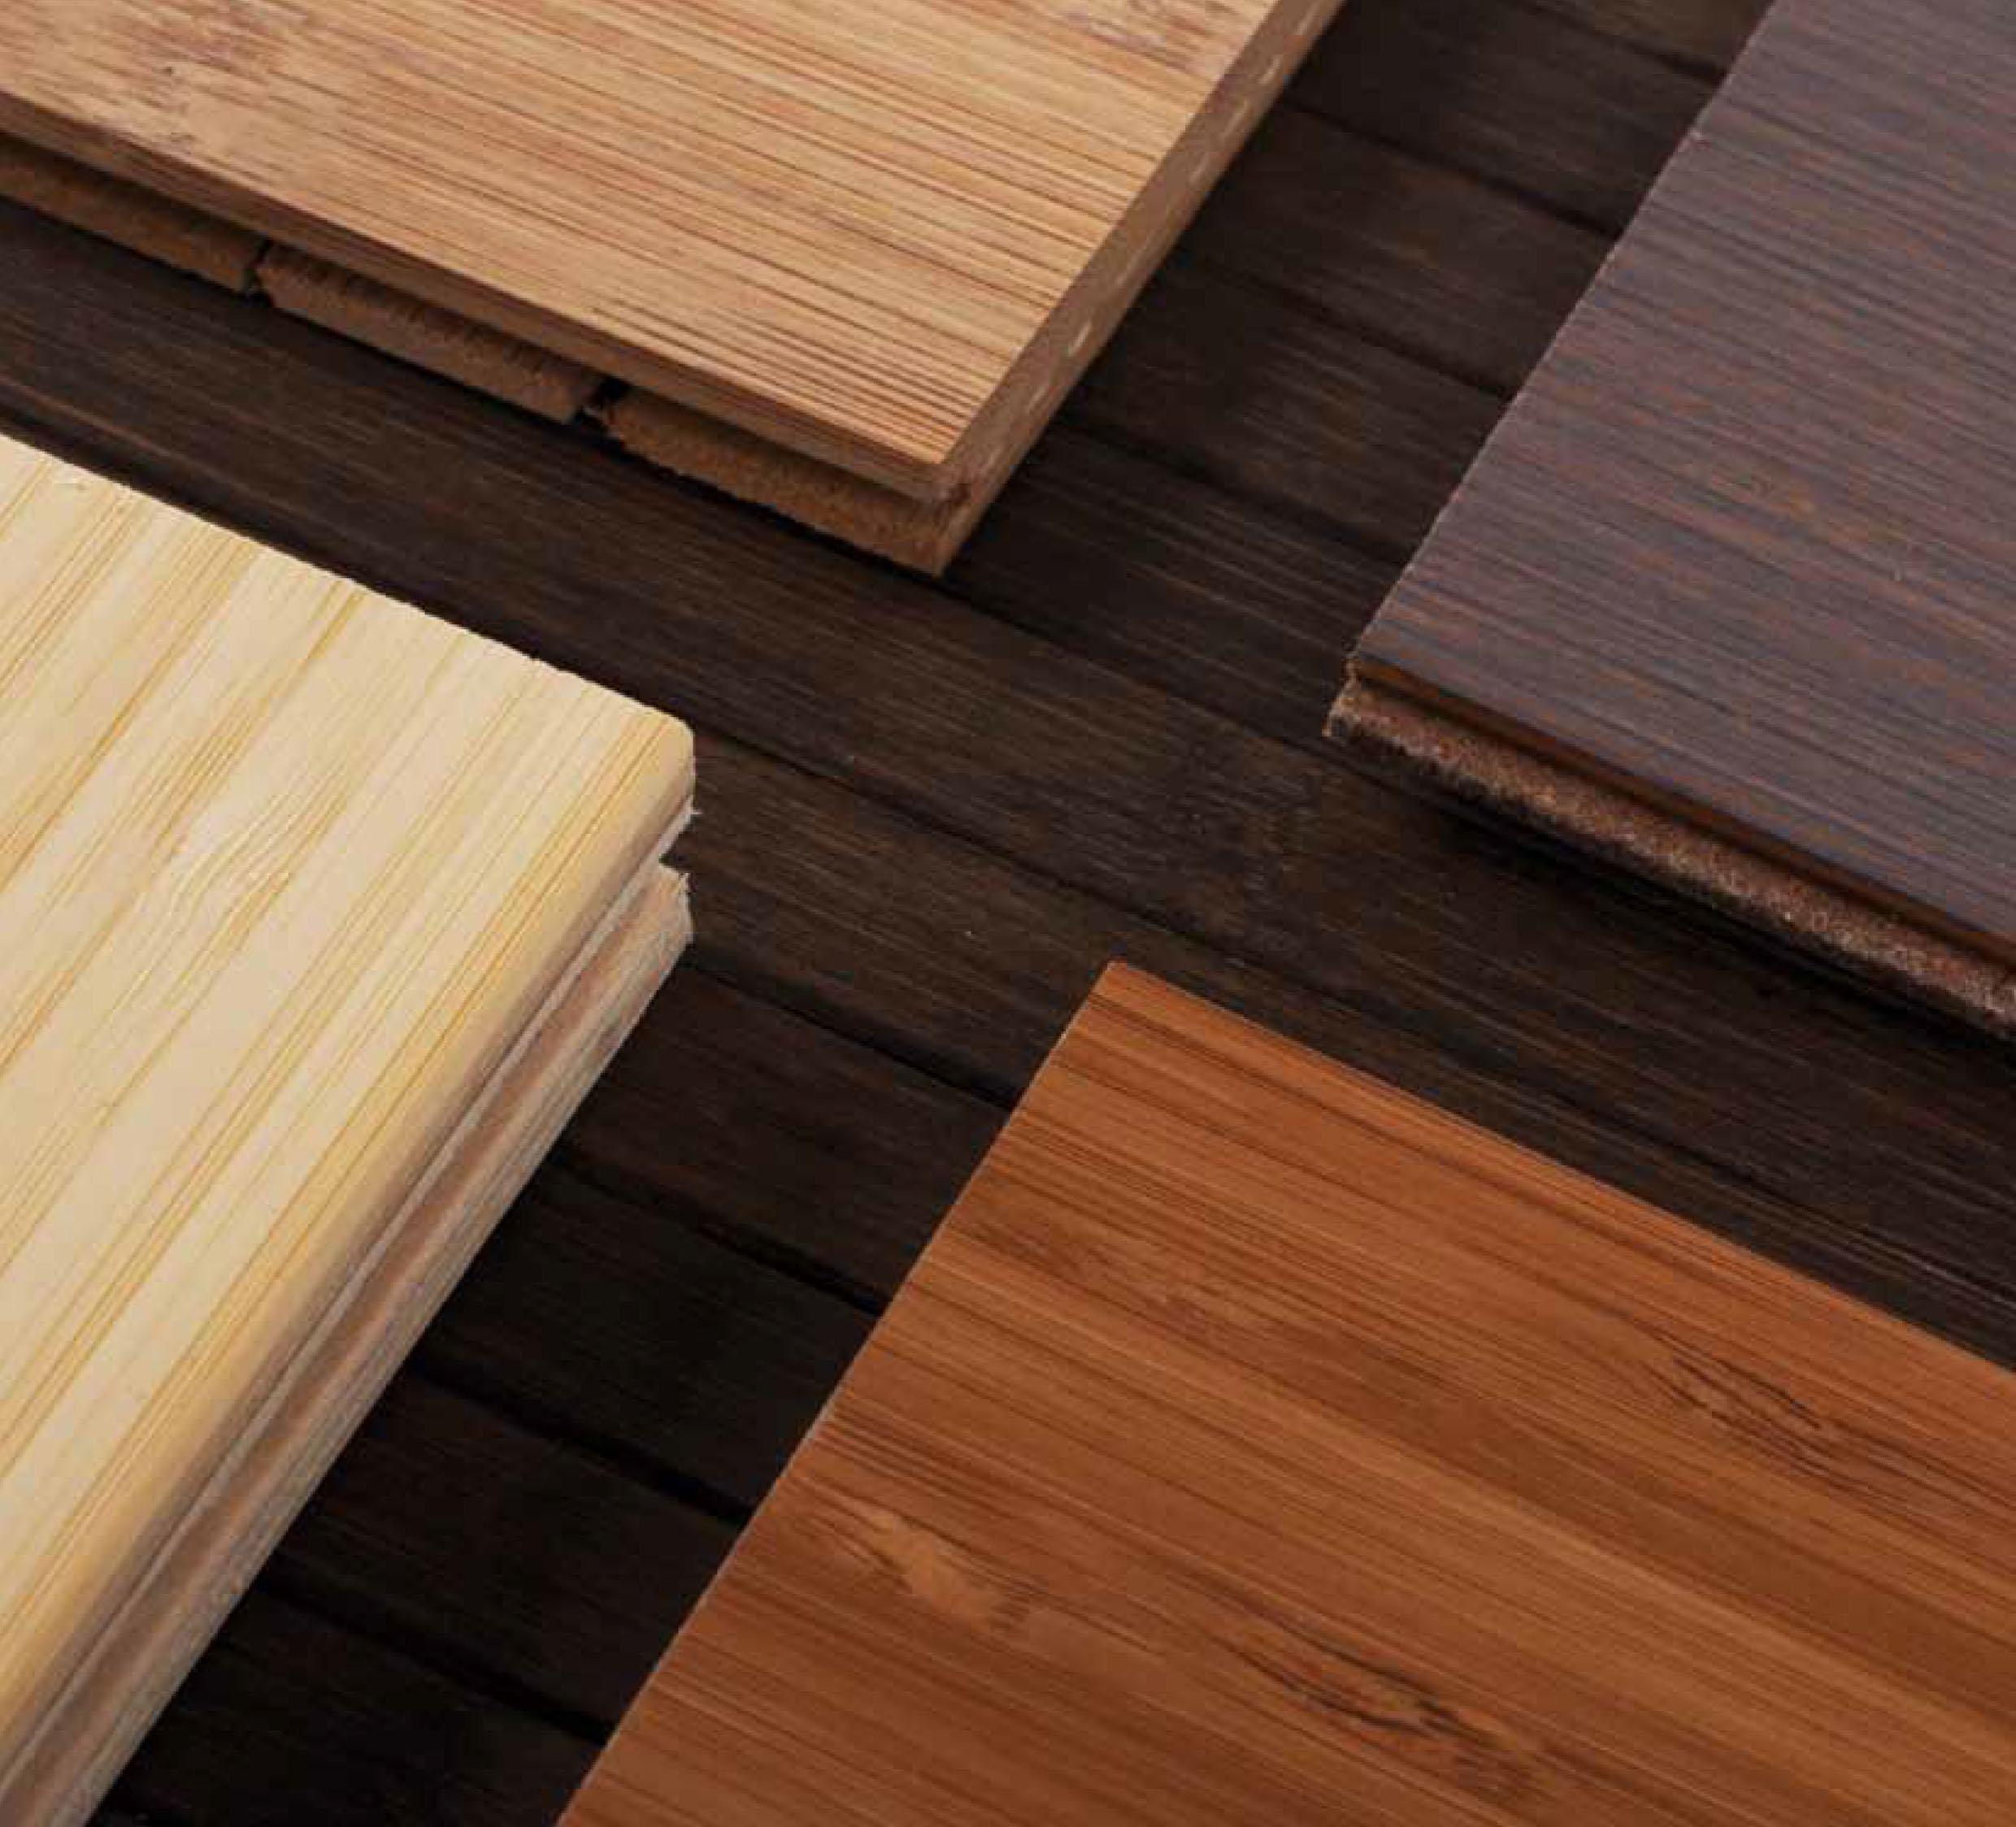 Moso bamboo surfaces bamboo fooring beams panels for Bamboo flooring outdoor decking